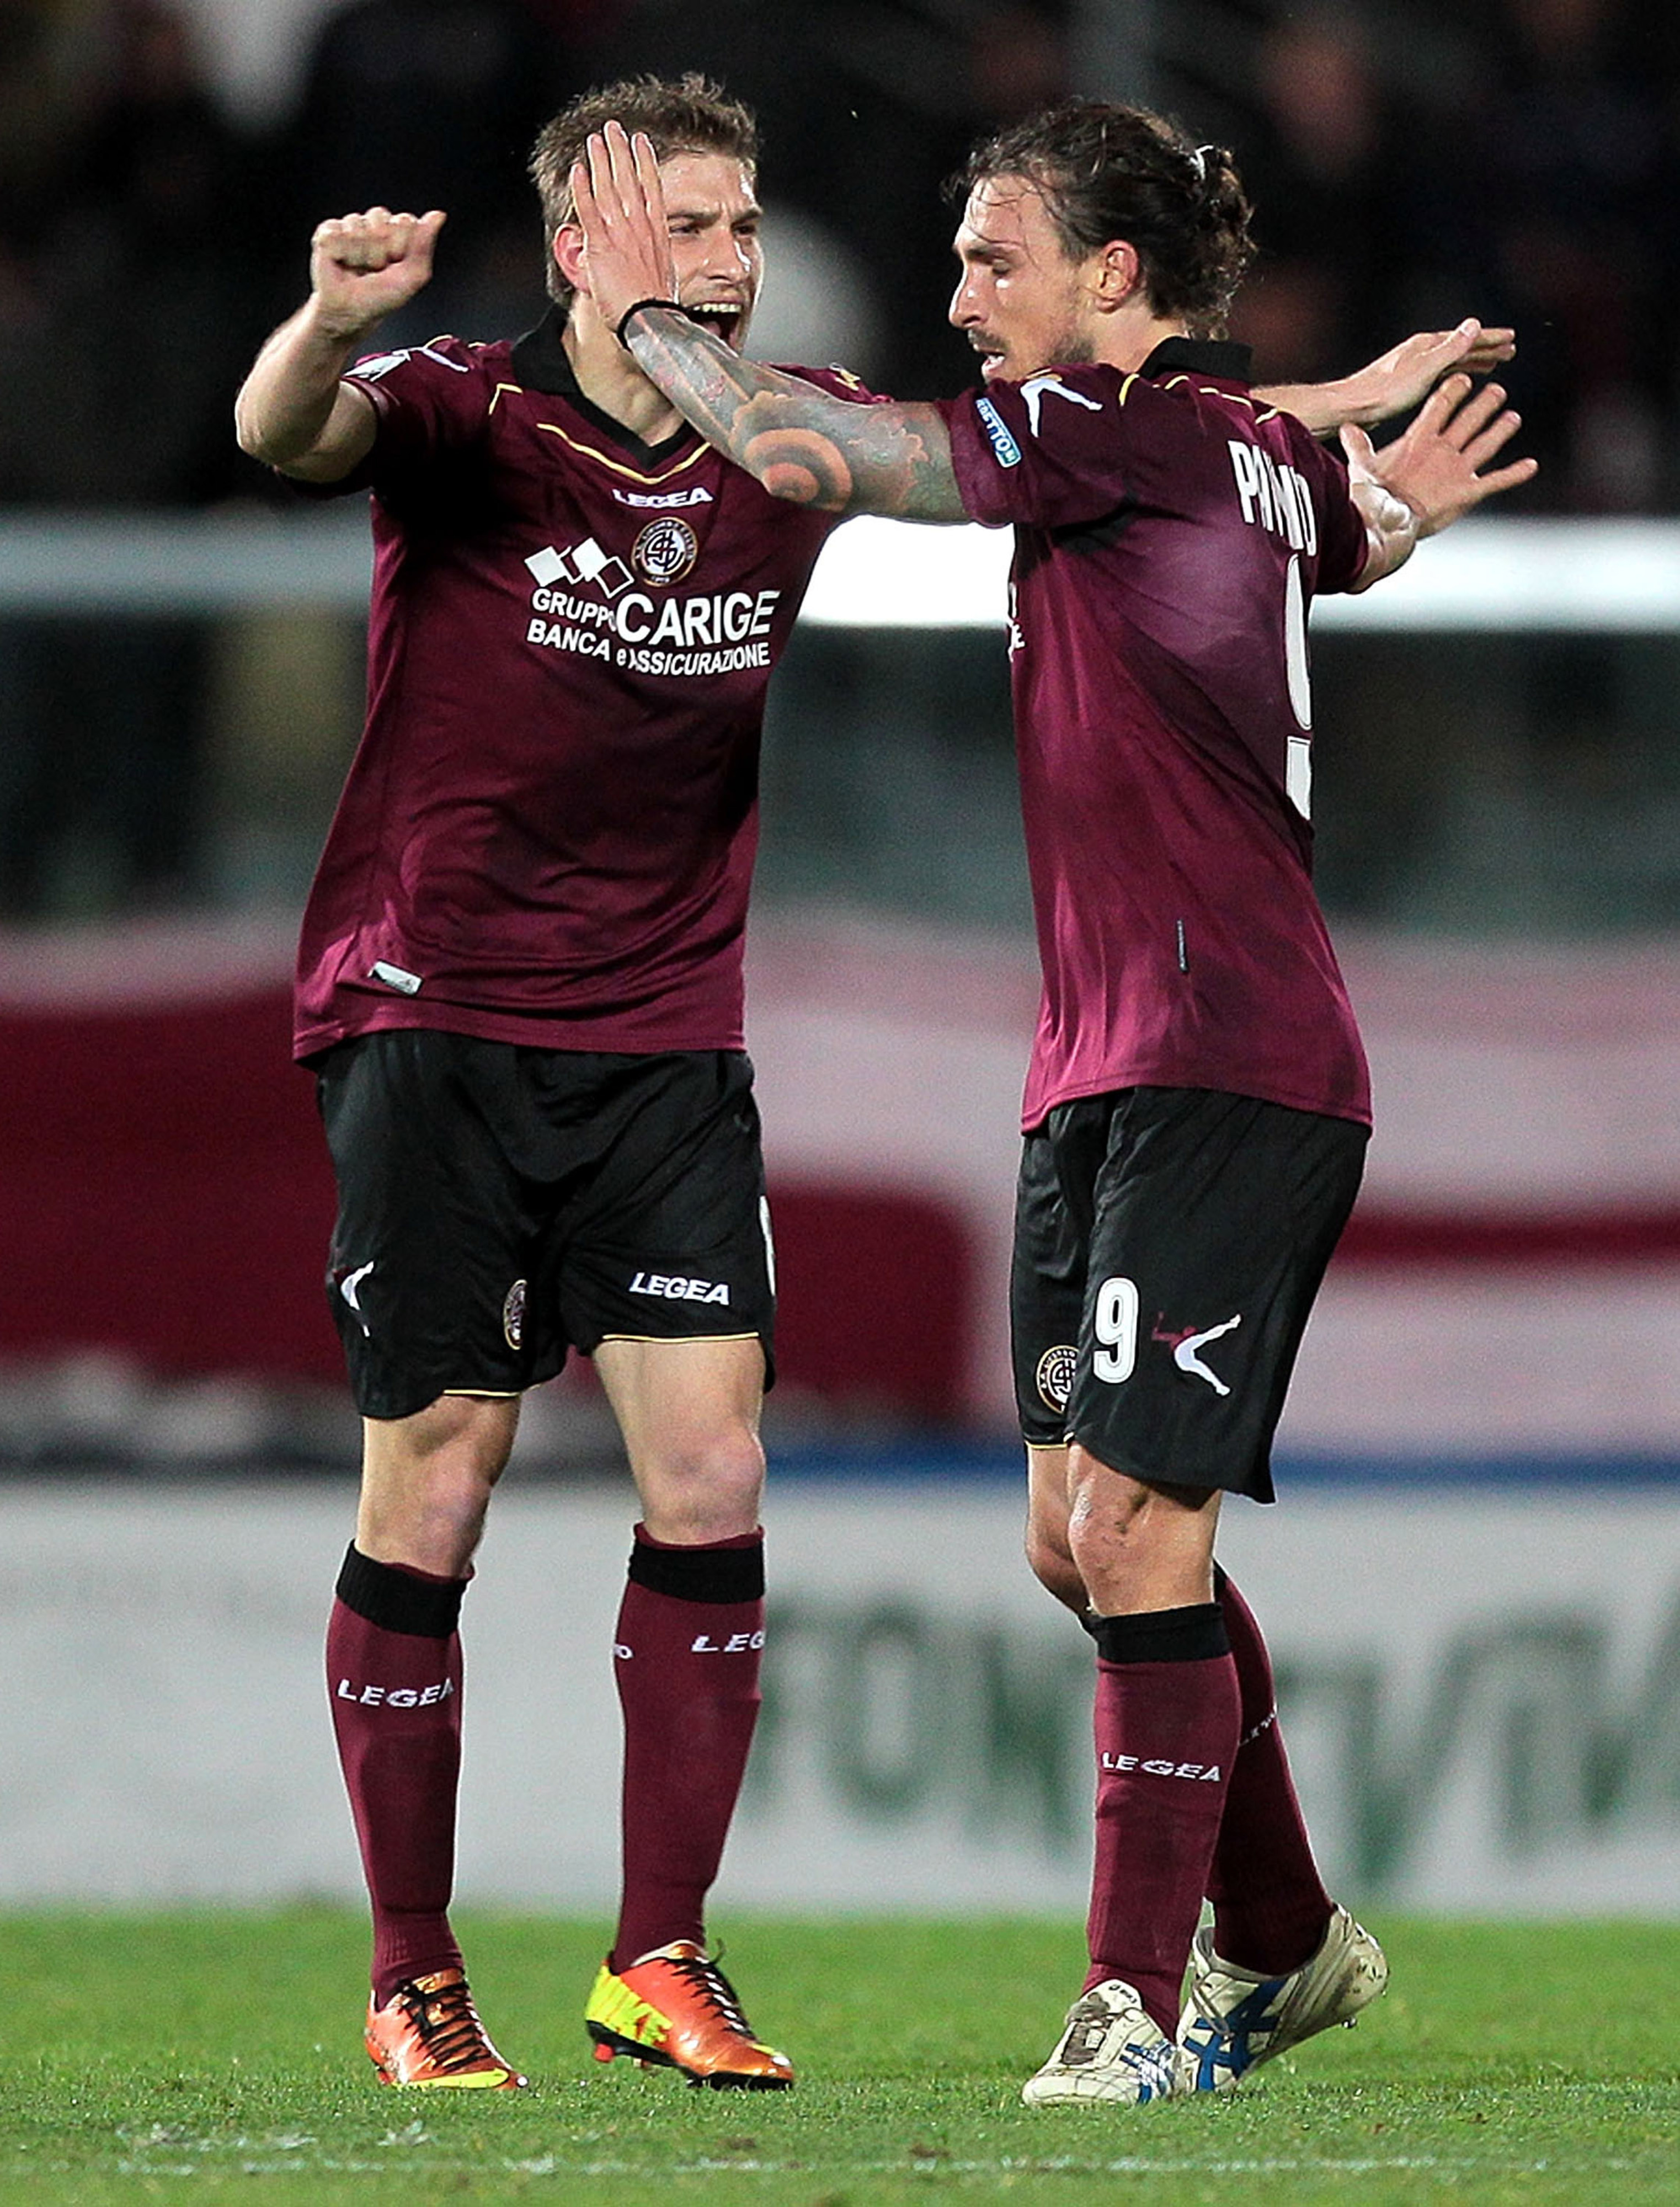 Livorno beat Empoli to win promotion to Serie A